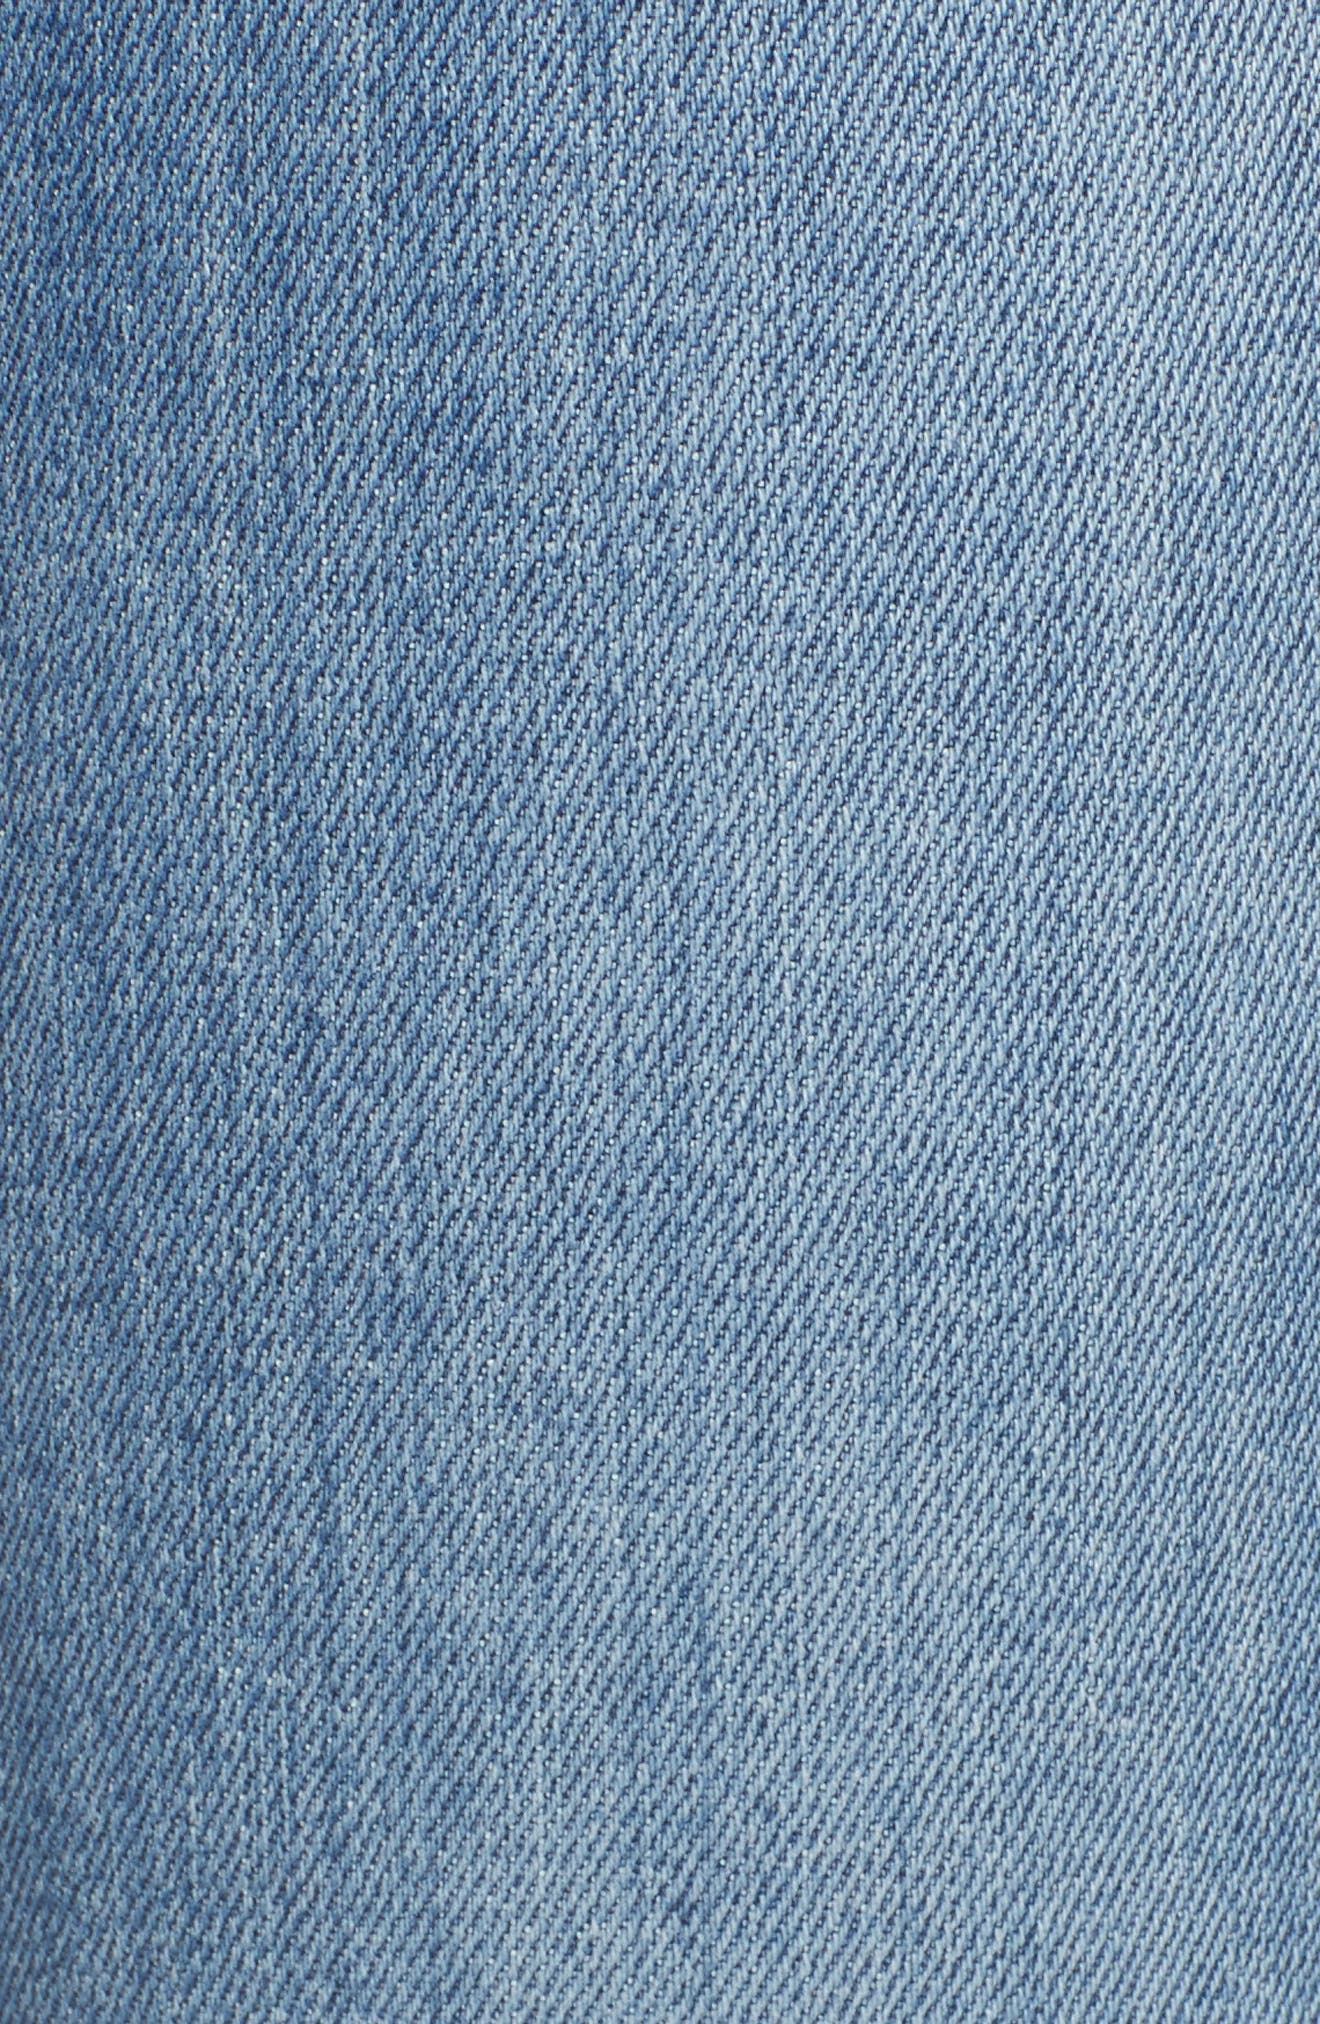 Alternate Image 5  - 7 For All Mankind® Roxanne Ankle Jeans (Bright Houston)